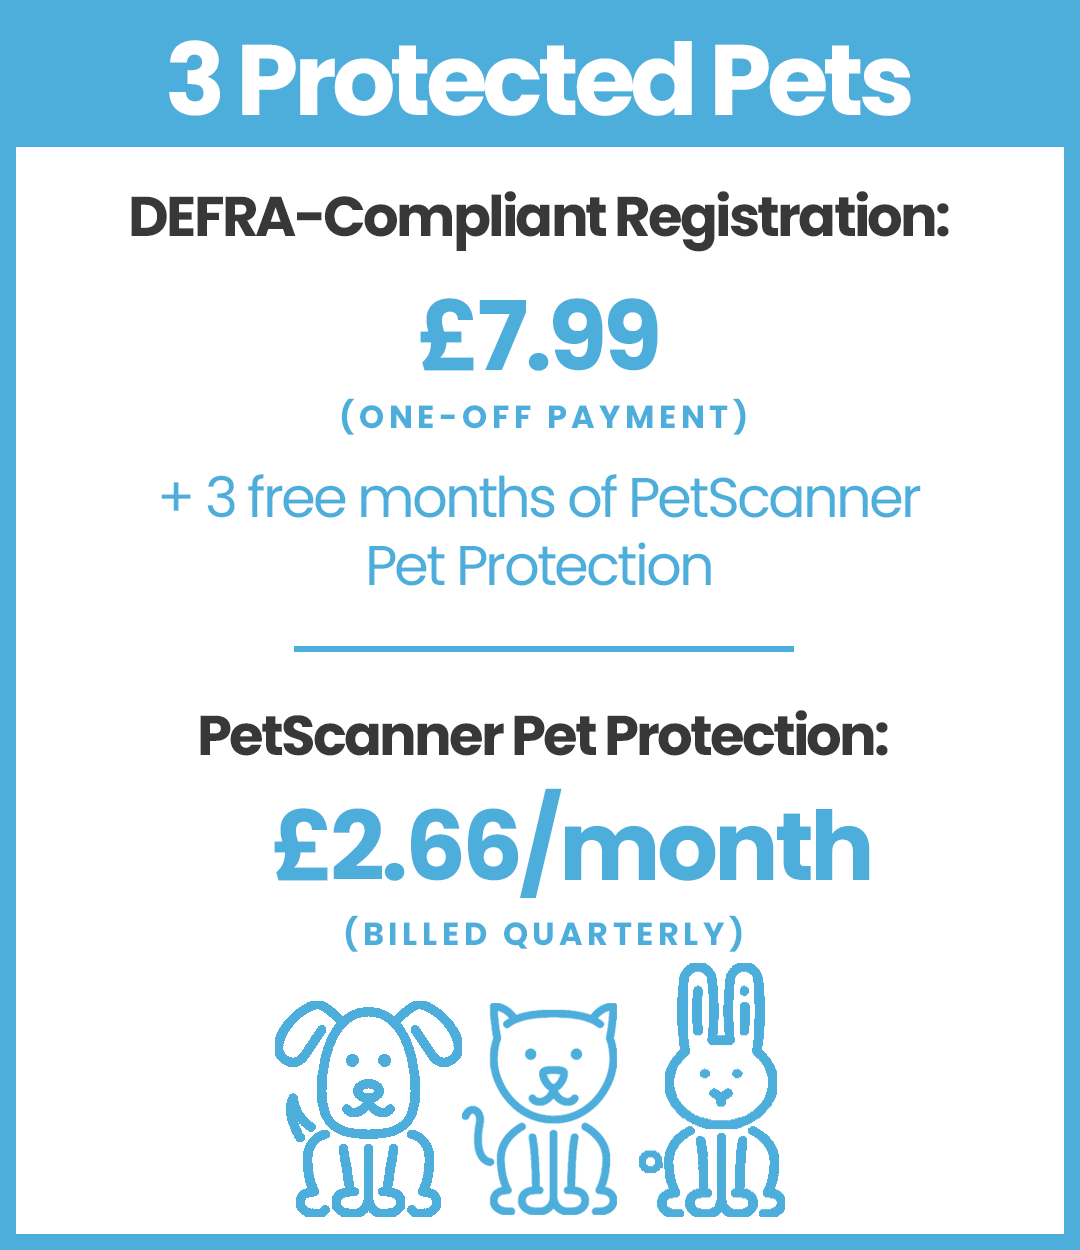 PetScanner Pricing for 3 pets